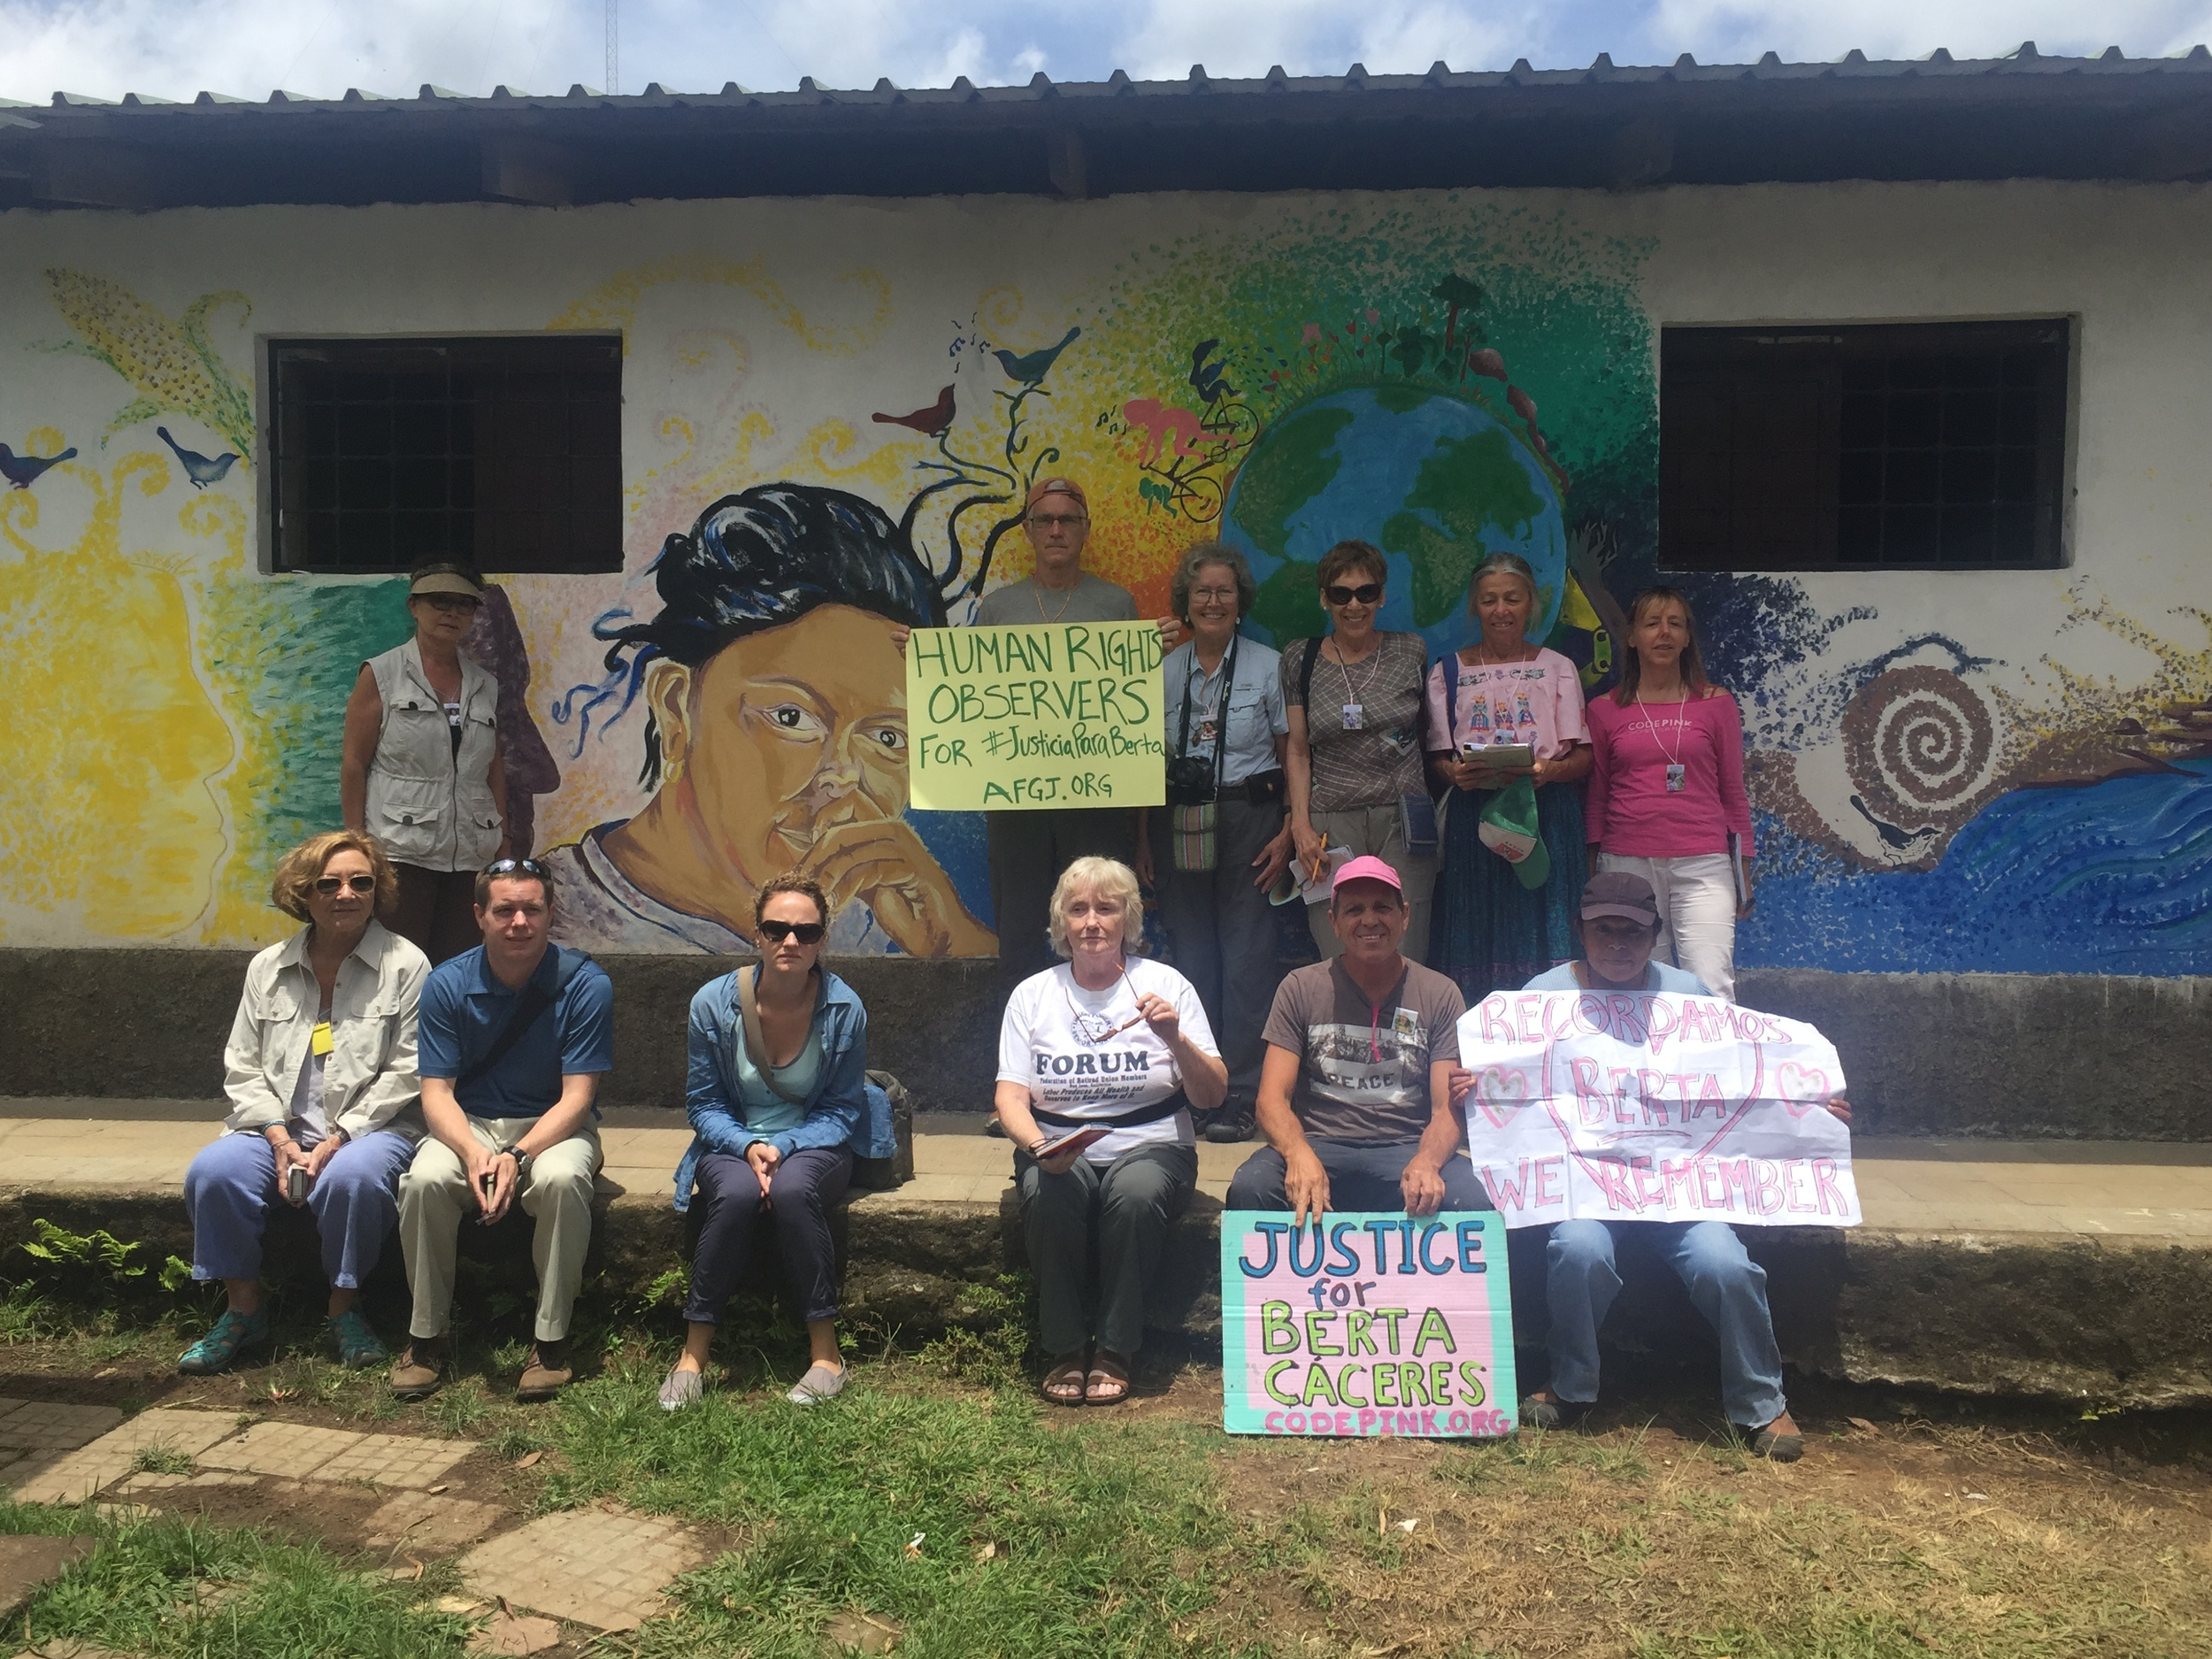 At COPINH's training centre, UTOPIA in La Esperanza. The mural in the back was painted shortly after Berta was killed. We went to various places throughout the day to take pictures and join in the International Twitter campaign organized by Berta's family and COPINH to demand justice for Berta and an International independent Commission of the Inter-American Commission of Human Rights to join the investigation. July 4, 2016.